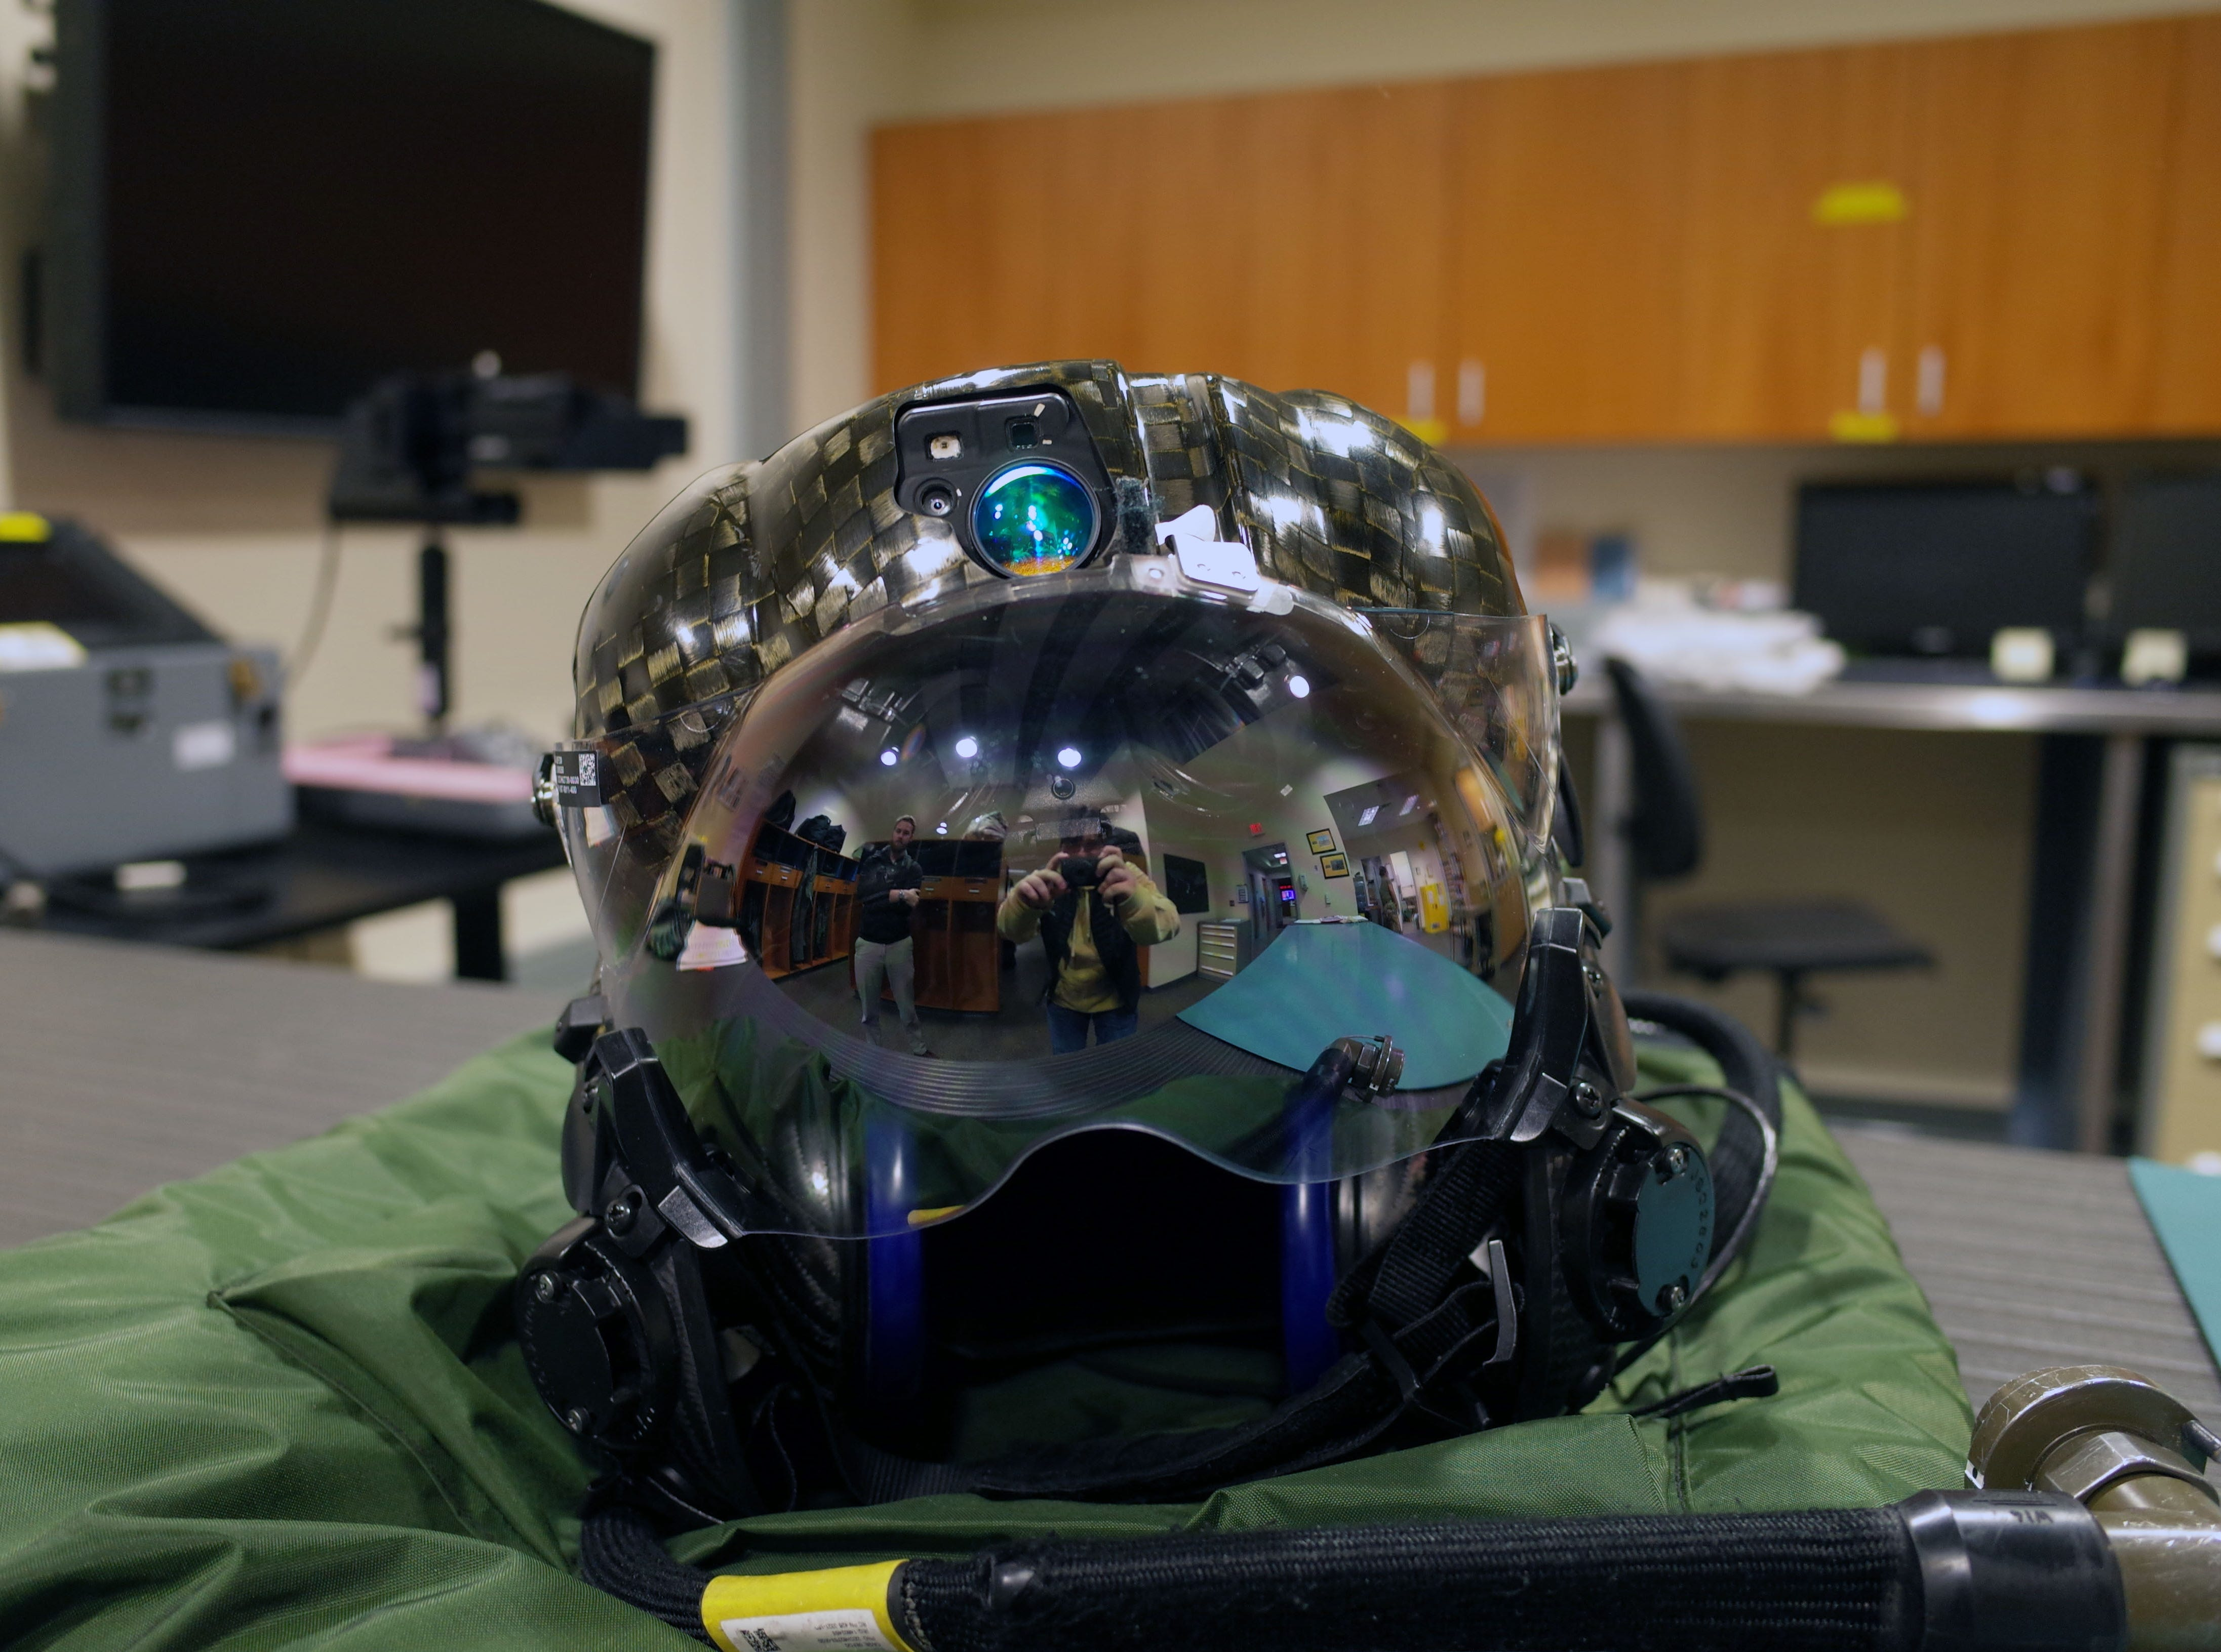 The standard-issue F-35 helmet features heads-up display technology that provides flight data to pilots, according to the US Air Force.